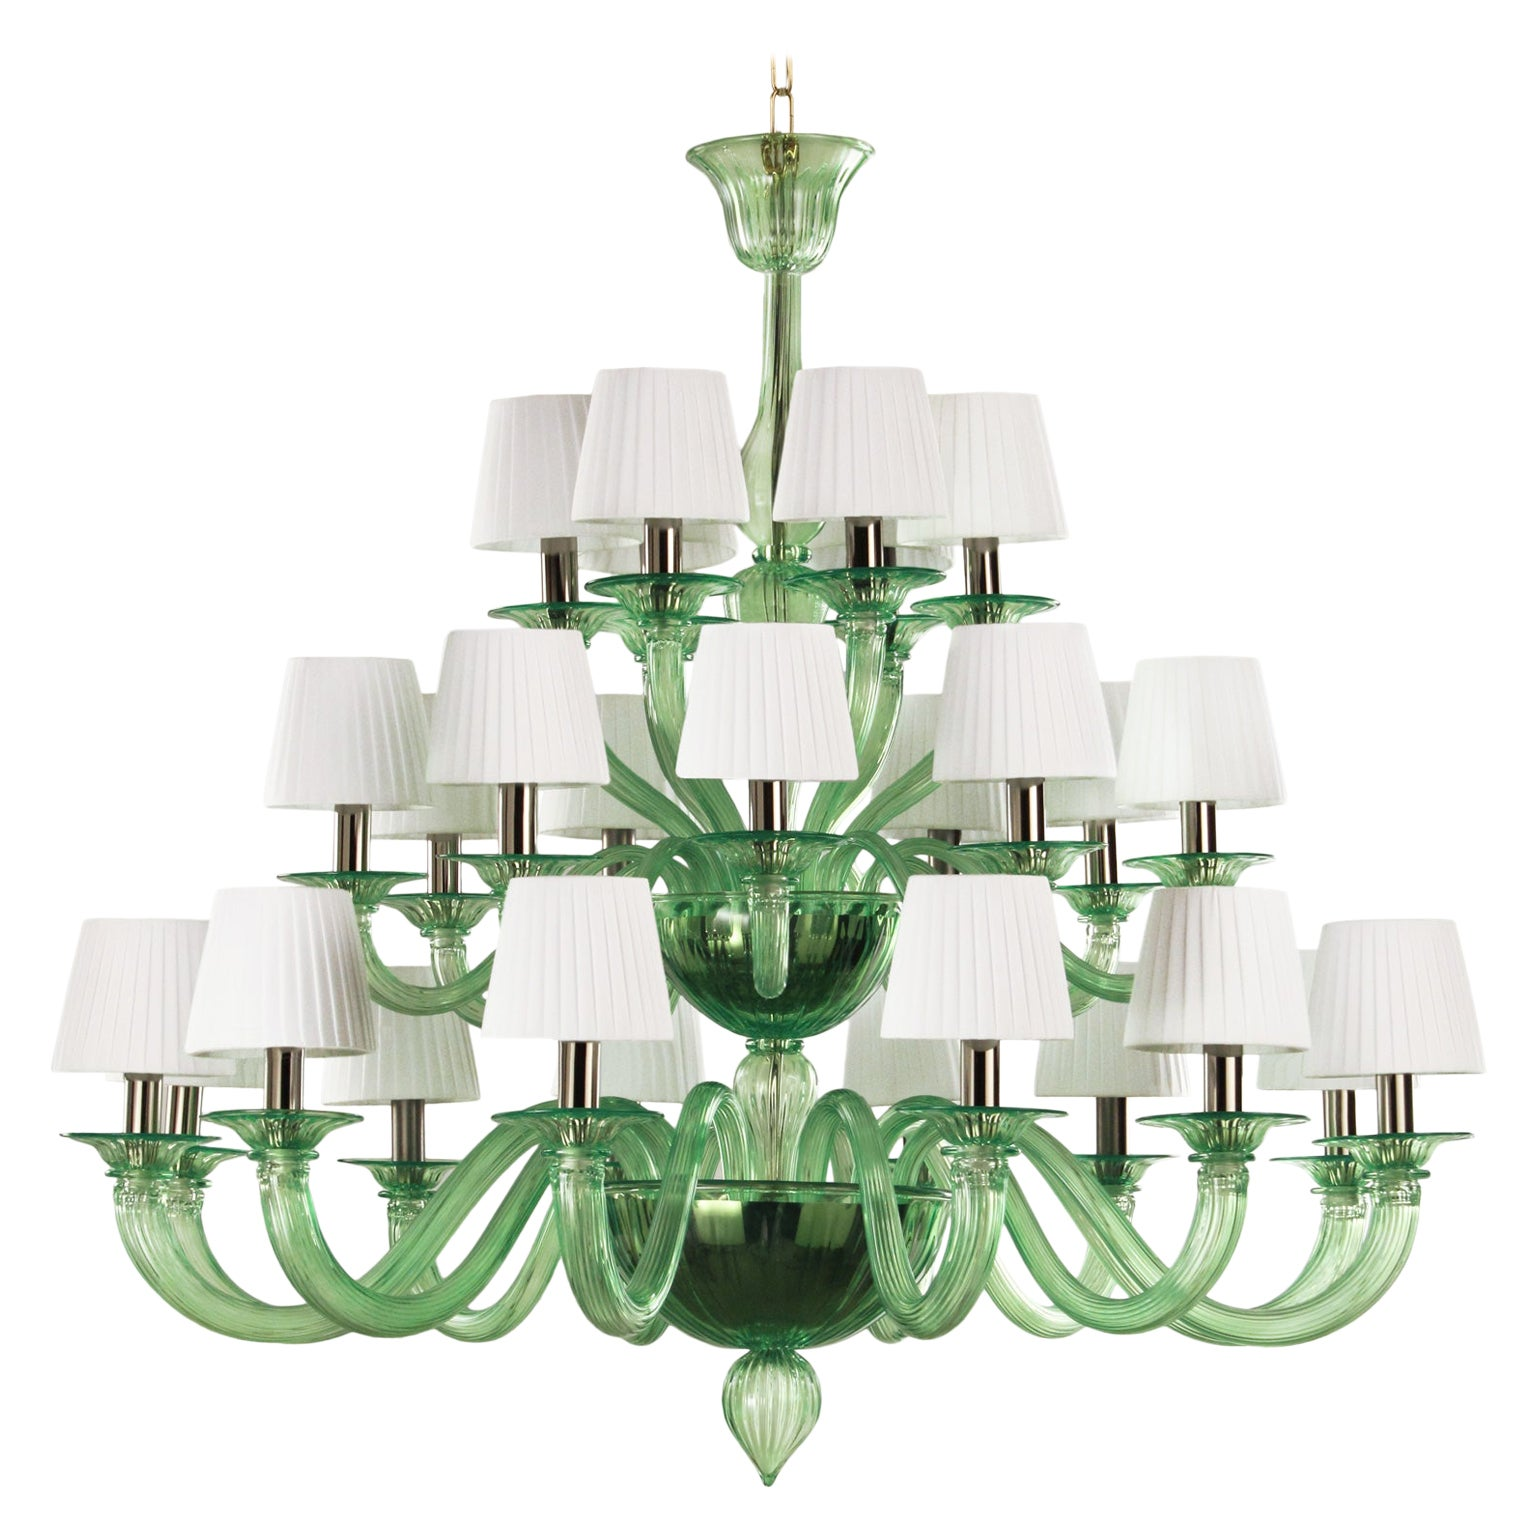 21st Century artistic  Chandelier 12+9+6 arms Green Murano Glass by Multiforme